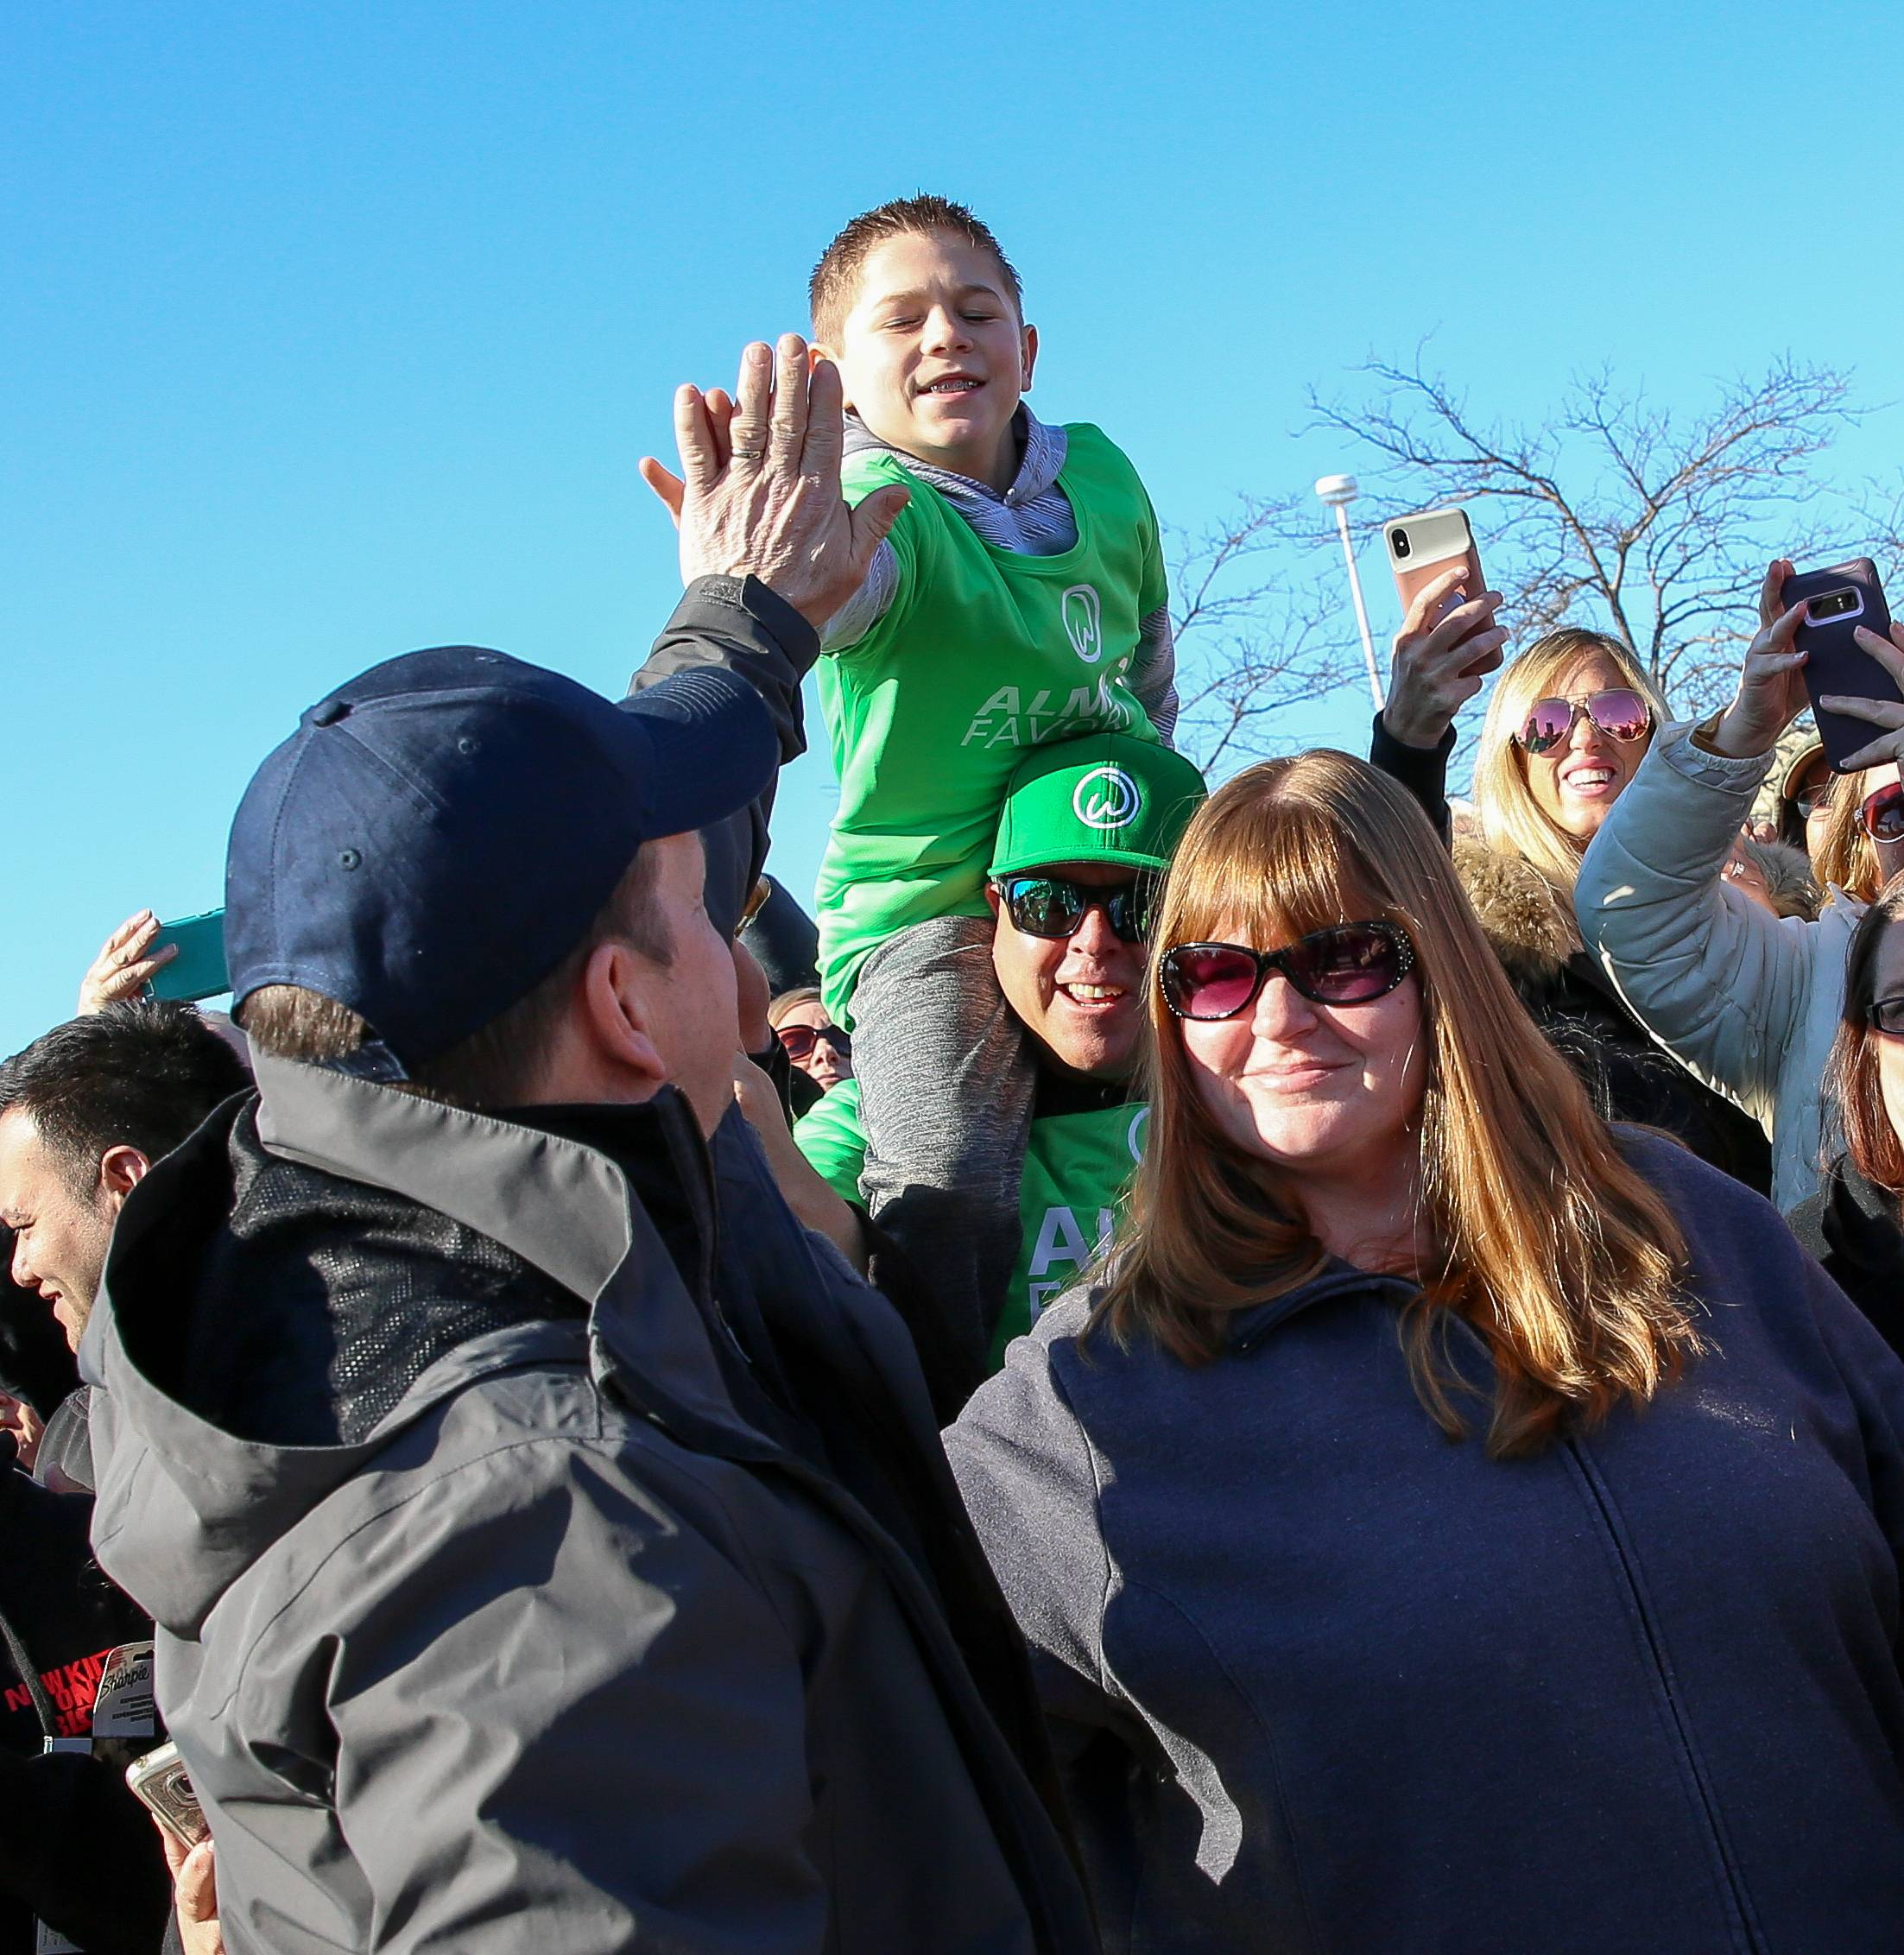 Dallas Ran, 10, gets a high-five from Paul Wahlberg at the groundbreaking of the new Wahlburgers restaurant in St. Charles on Friday. Paul Wahlberg is the executive chef of Wahlburgers restaurant chain he owns with brothers Mark and Donnie.